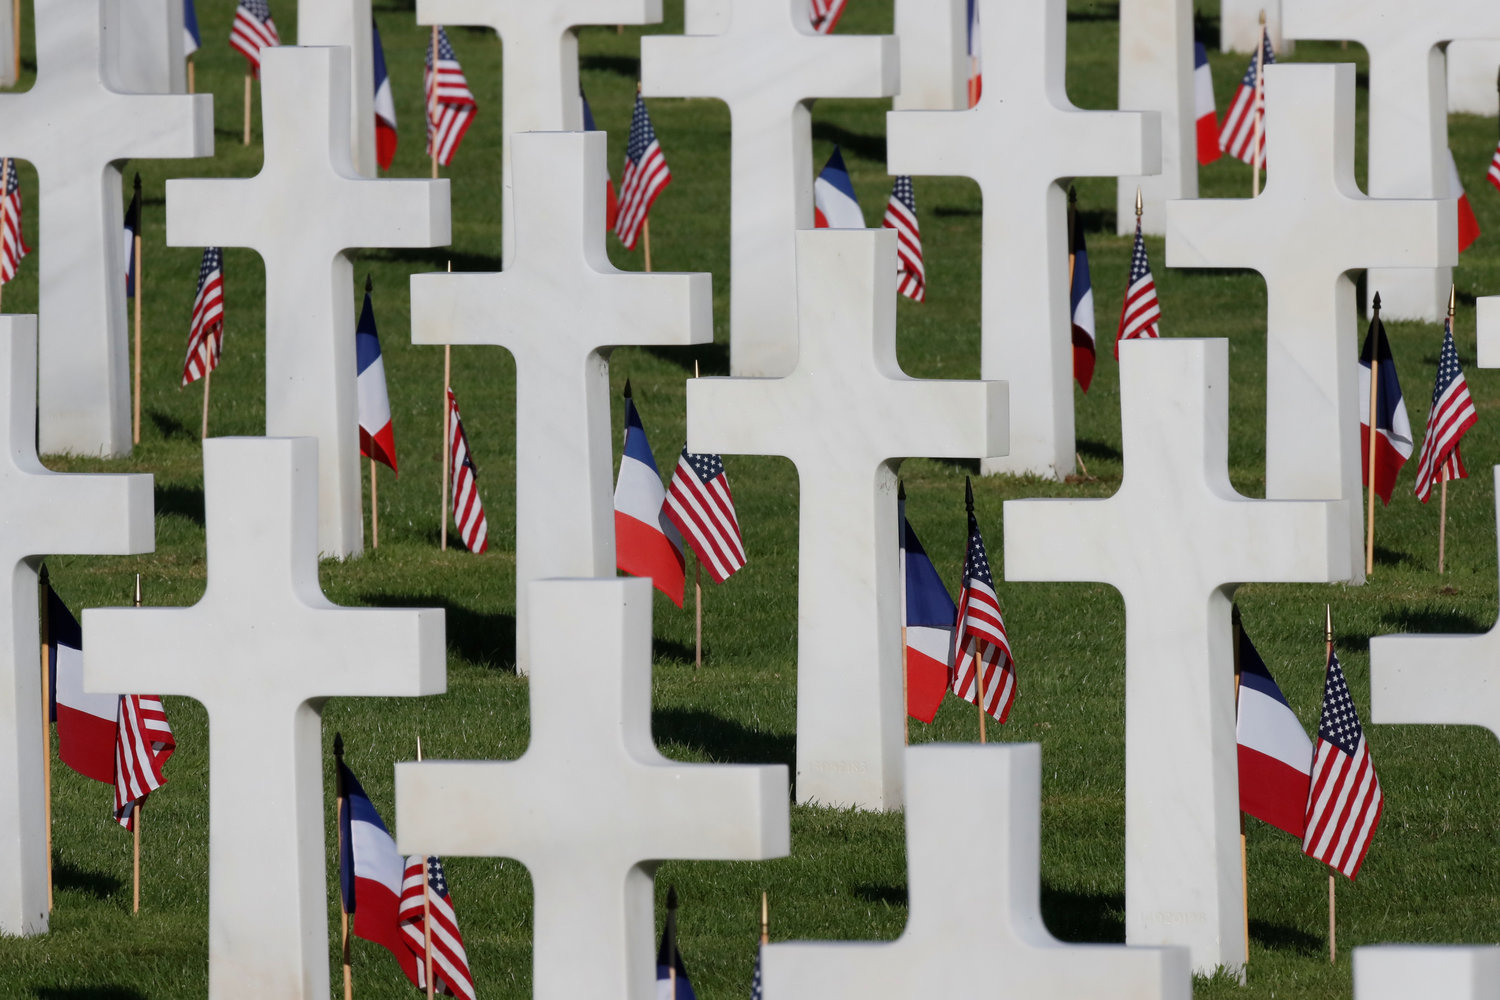 American and French flags are seen in front of headstones in the cemetery of Colleville-sur-Mer in Normandy, France, June 6.